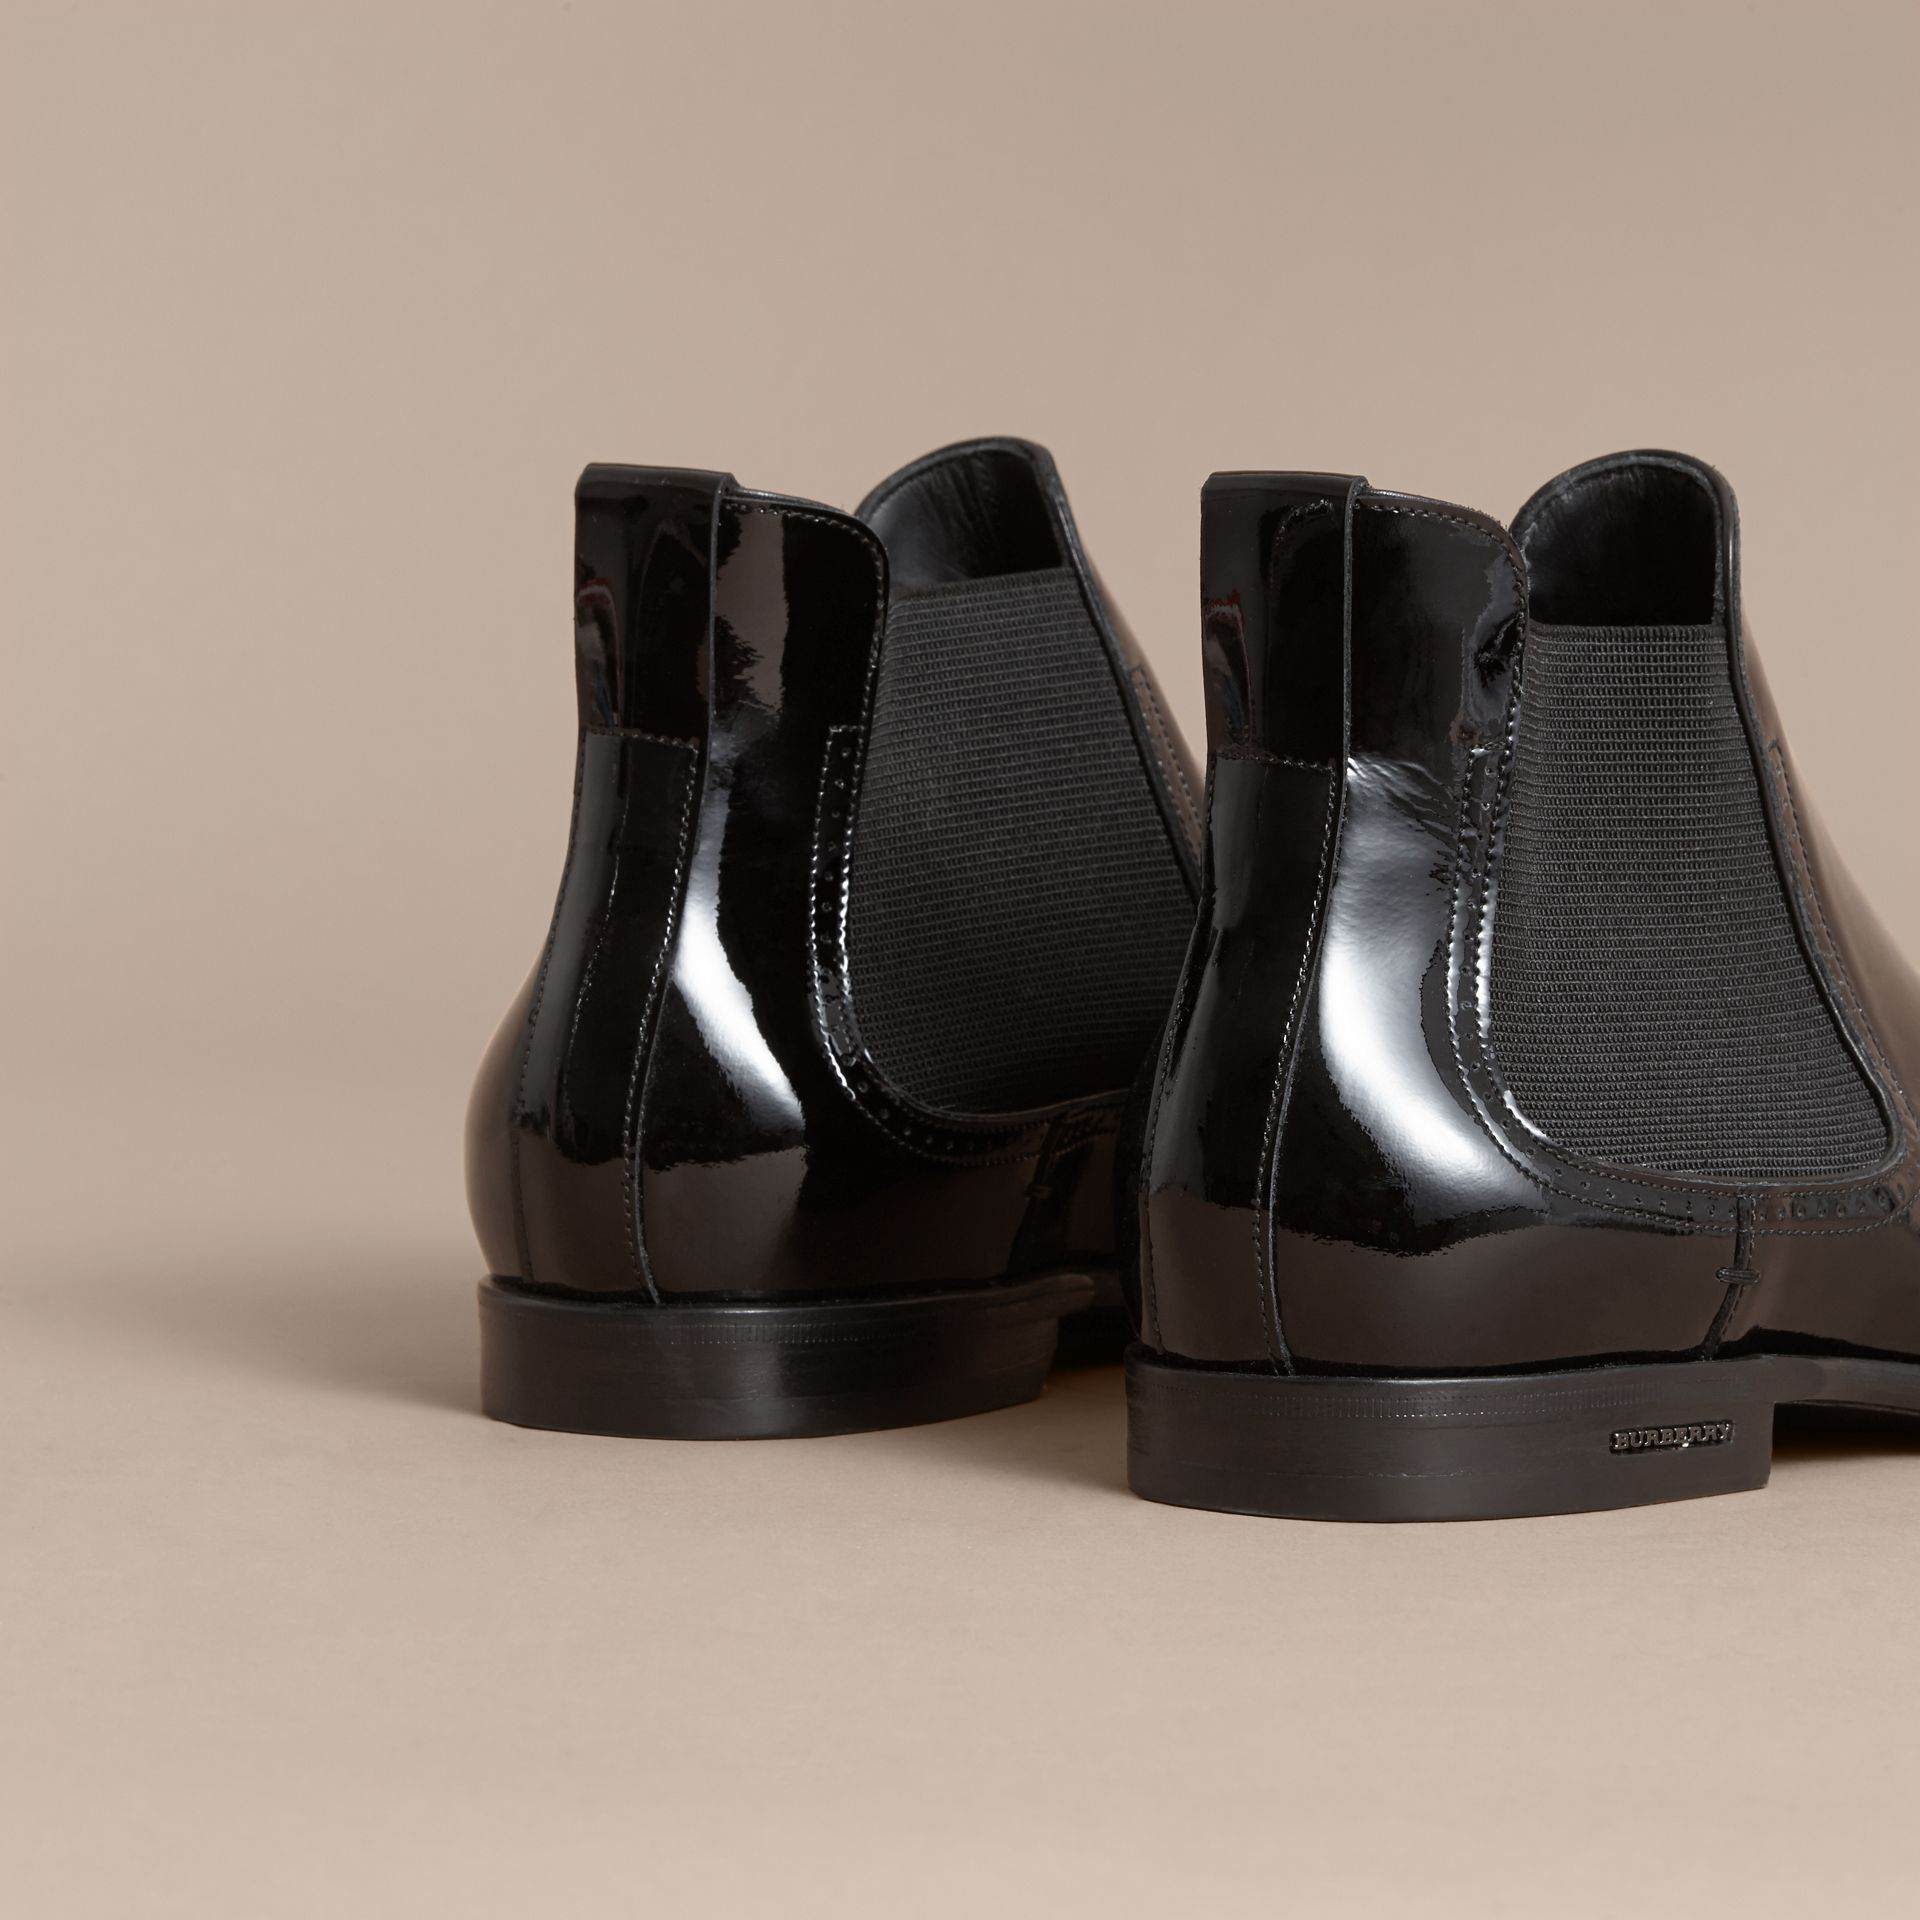 Polished Leather Chelsea Boots in Black - Men | Burberry Canada - gallery image 3